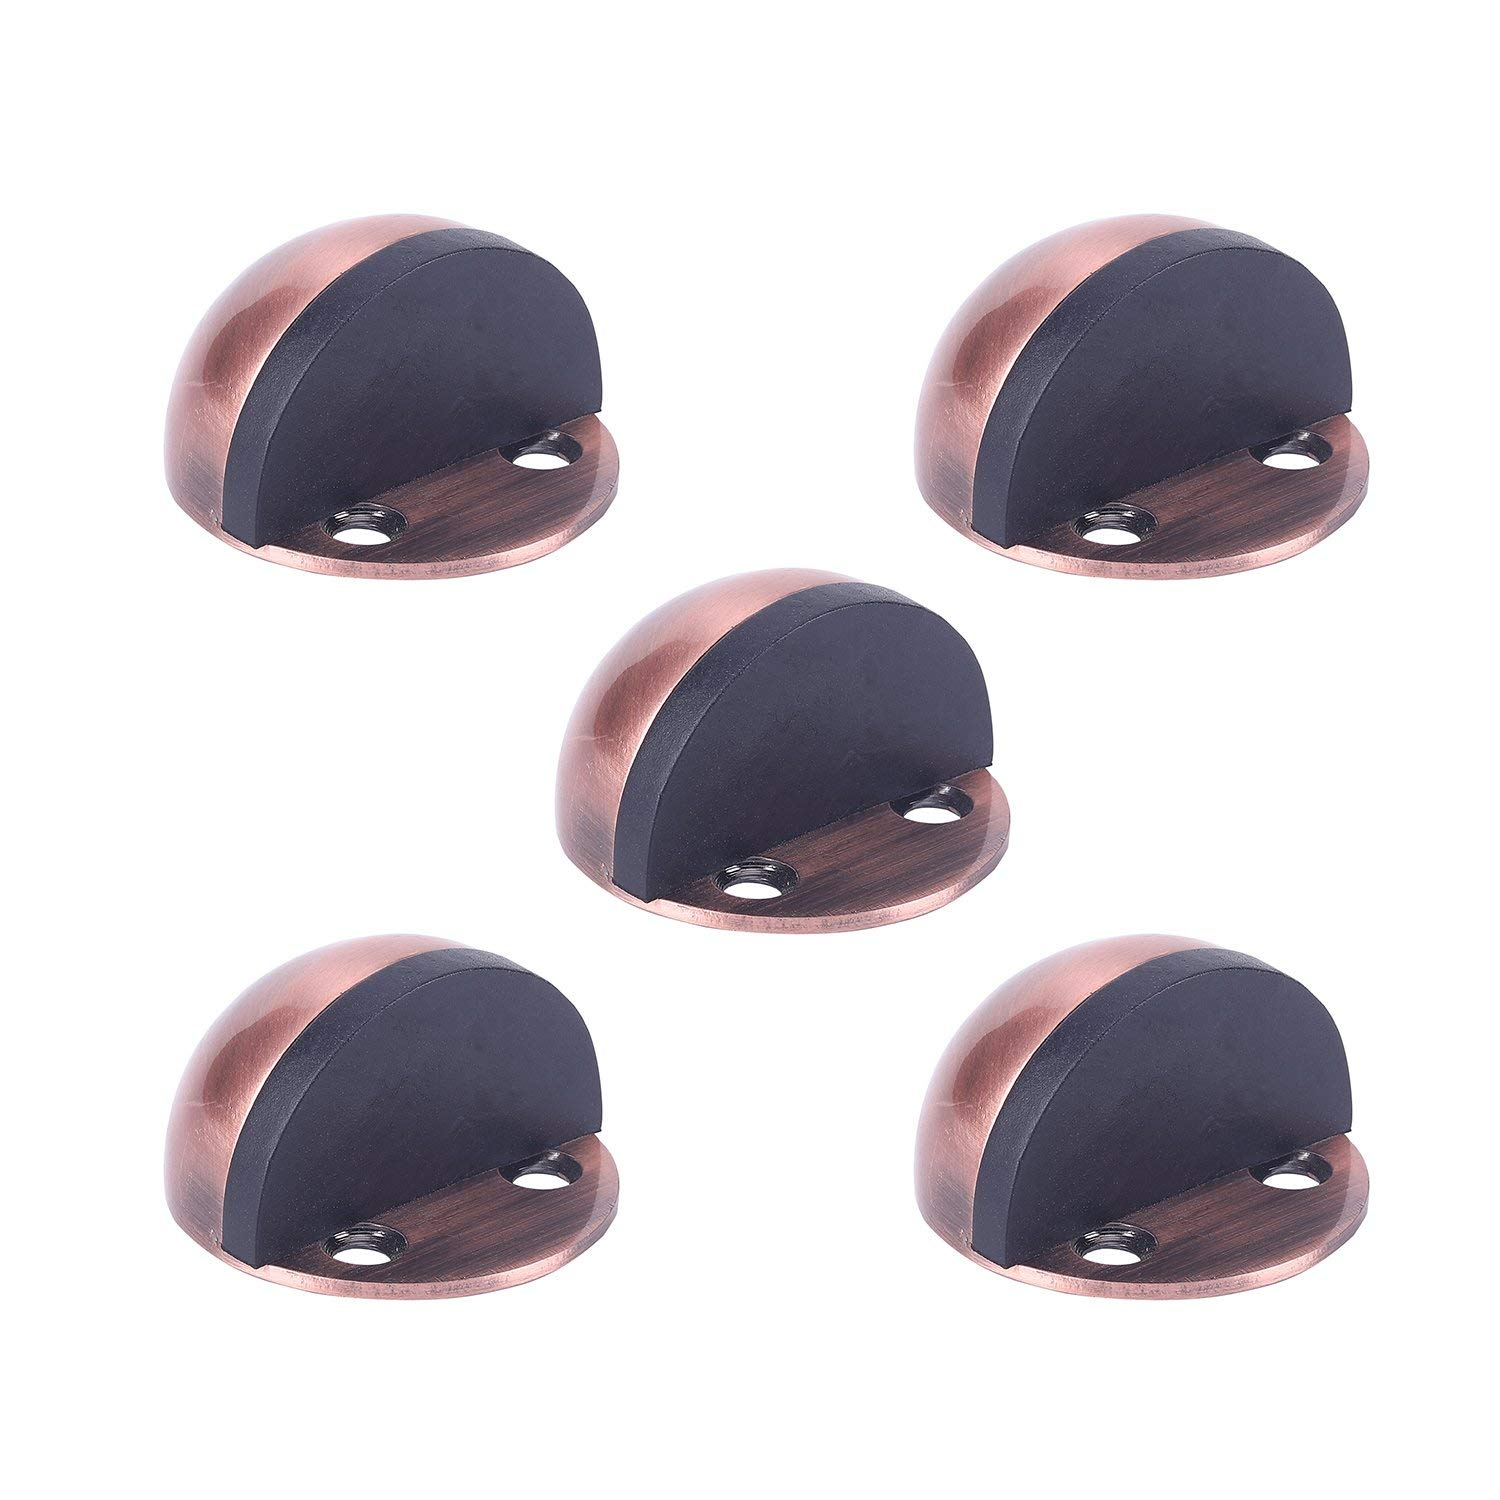 TPOHH Red Antique Copper Stainless Steel Half Dome Floor Door Stop with Double-Sided Adhesive Tape No Need to Drill, 5 PCS